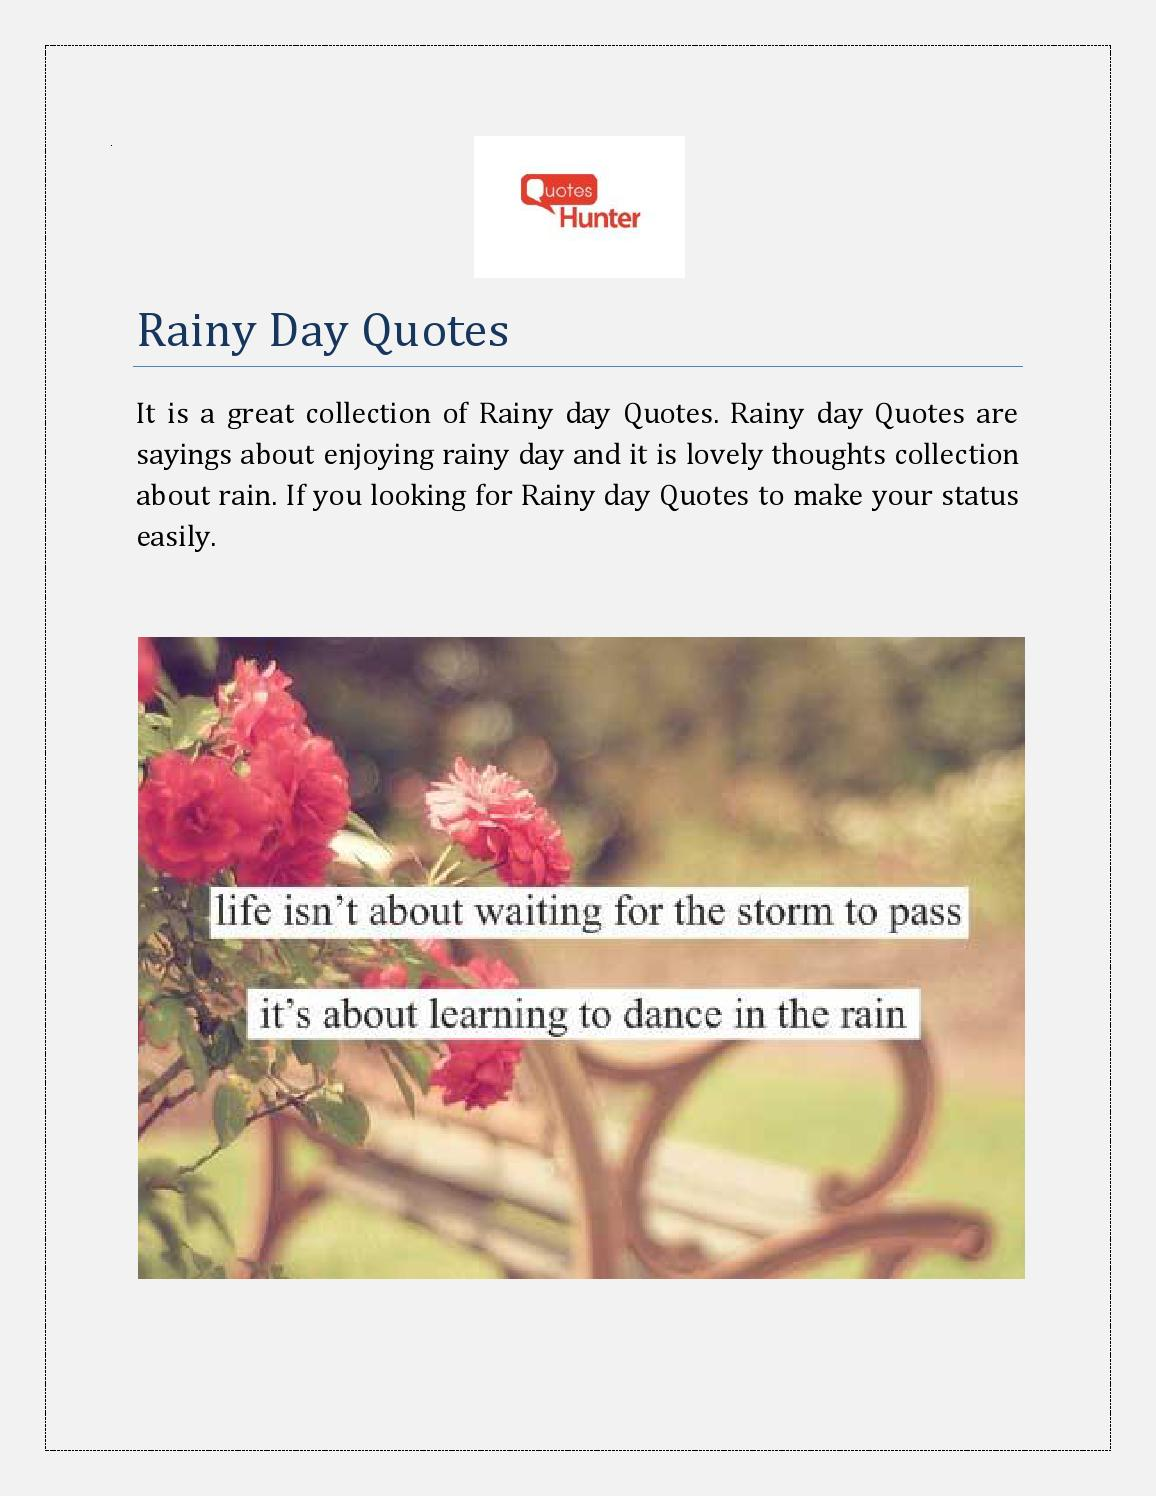 rainy day quotes by quoteshunter issuu